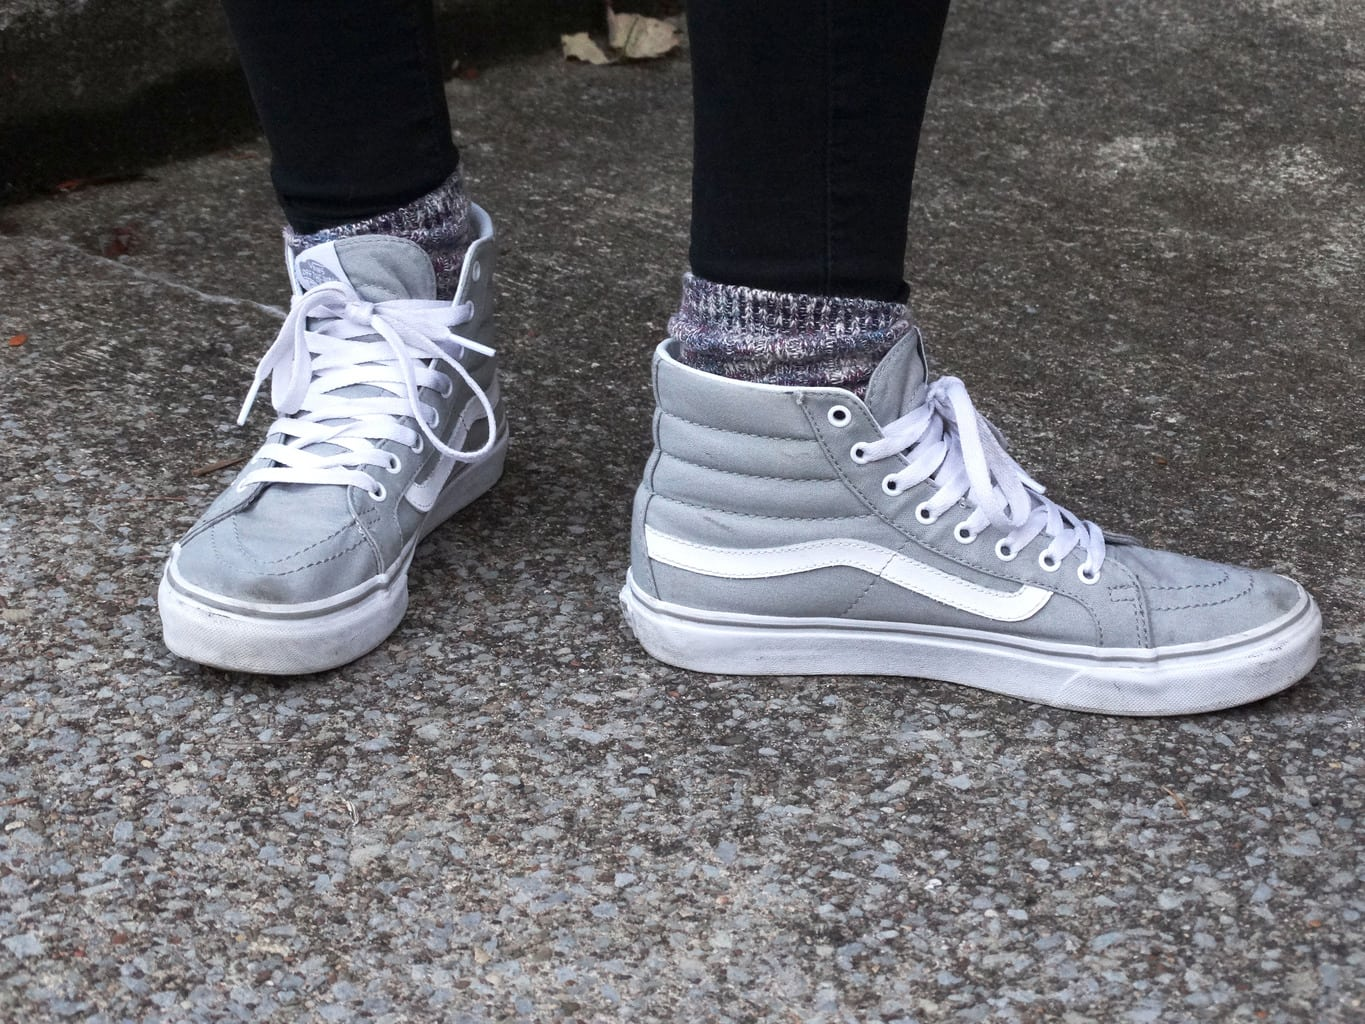 Sporty grey footwear for this West Virginia University student. She pairs these light grey hightops with chunky marbled socks peeking out of the top.